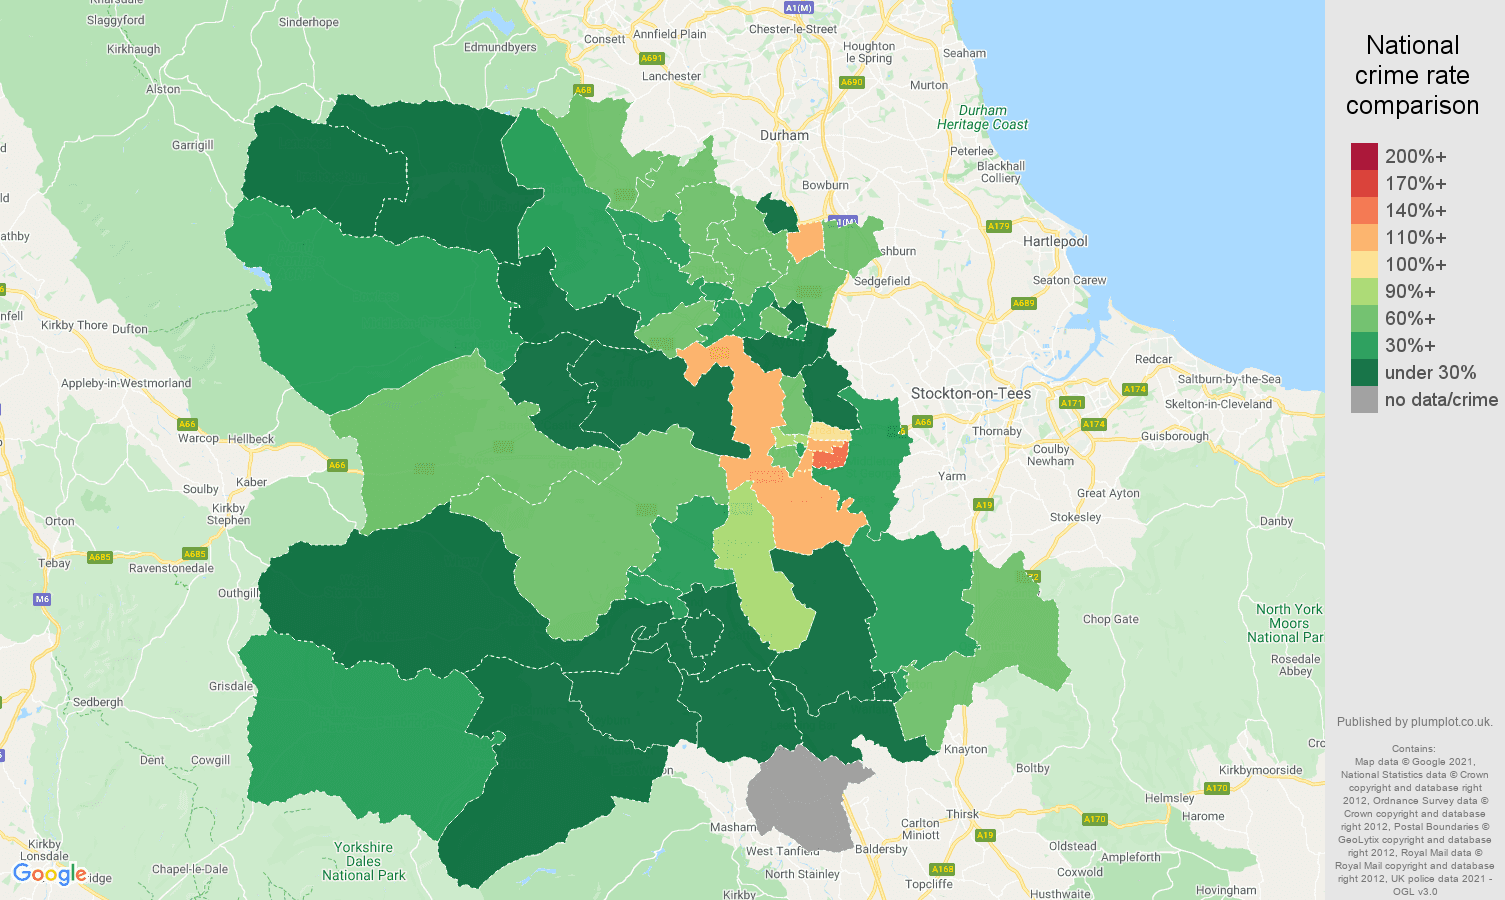 Darlington vehicle crime rate comparison map